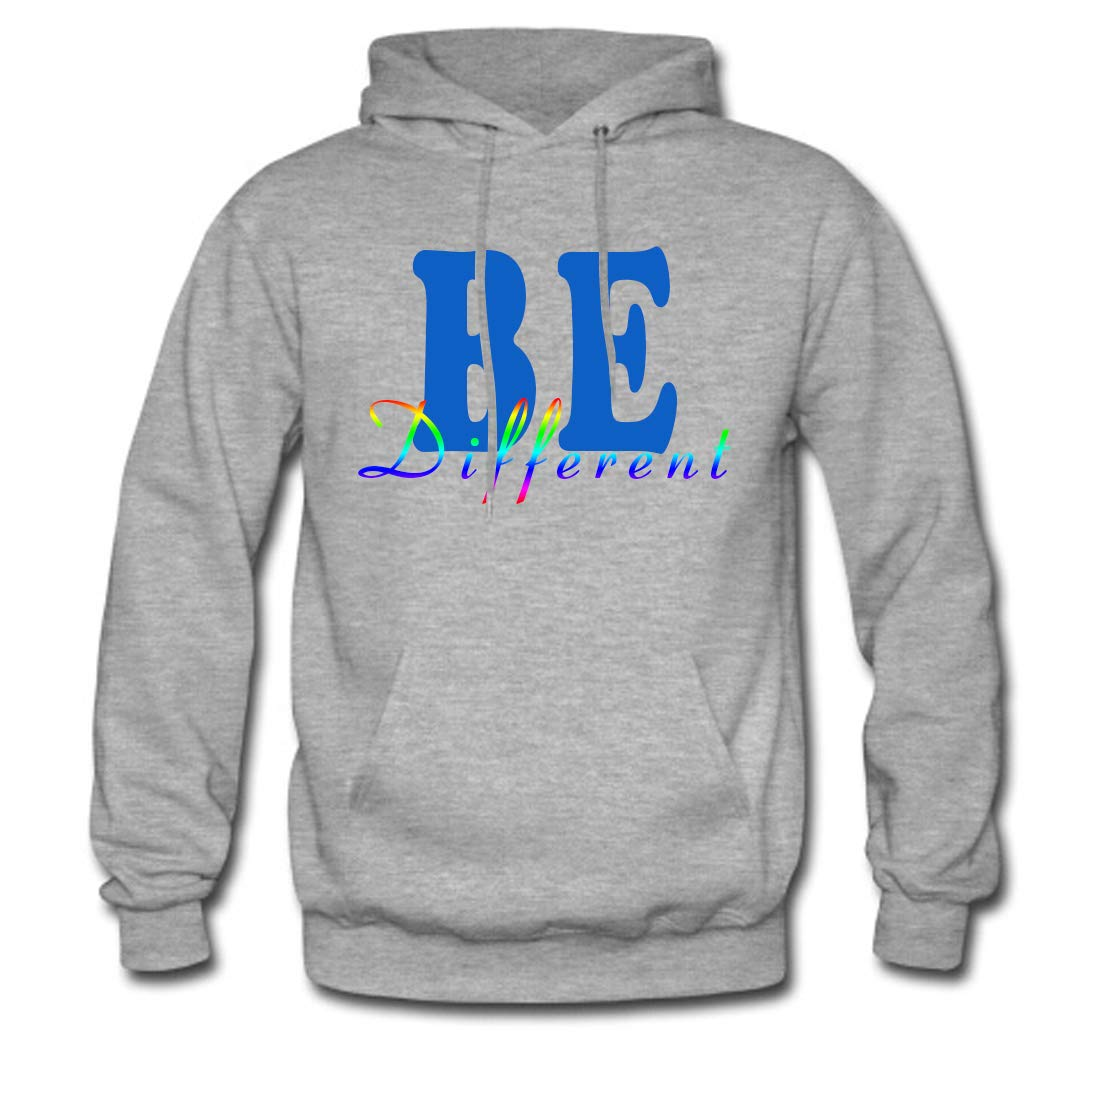 Mens Classic Pullover Hoodie Sweatshirt,Be Different Print